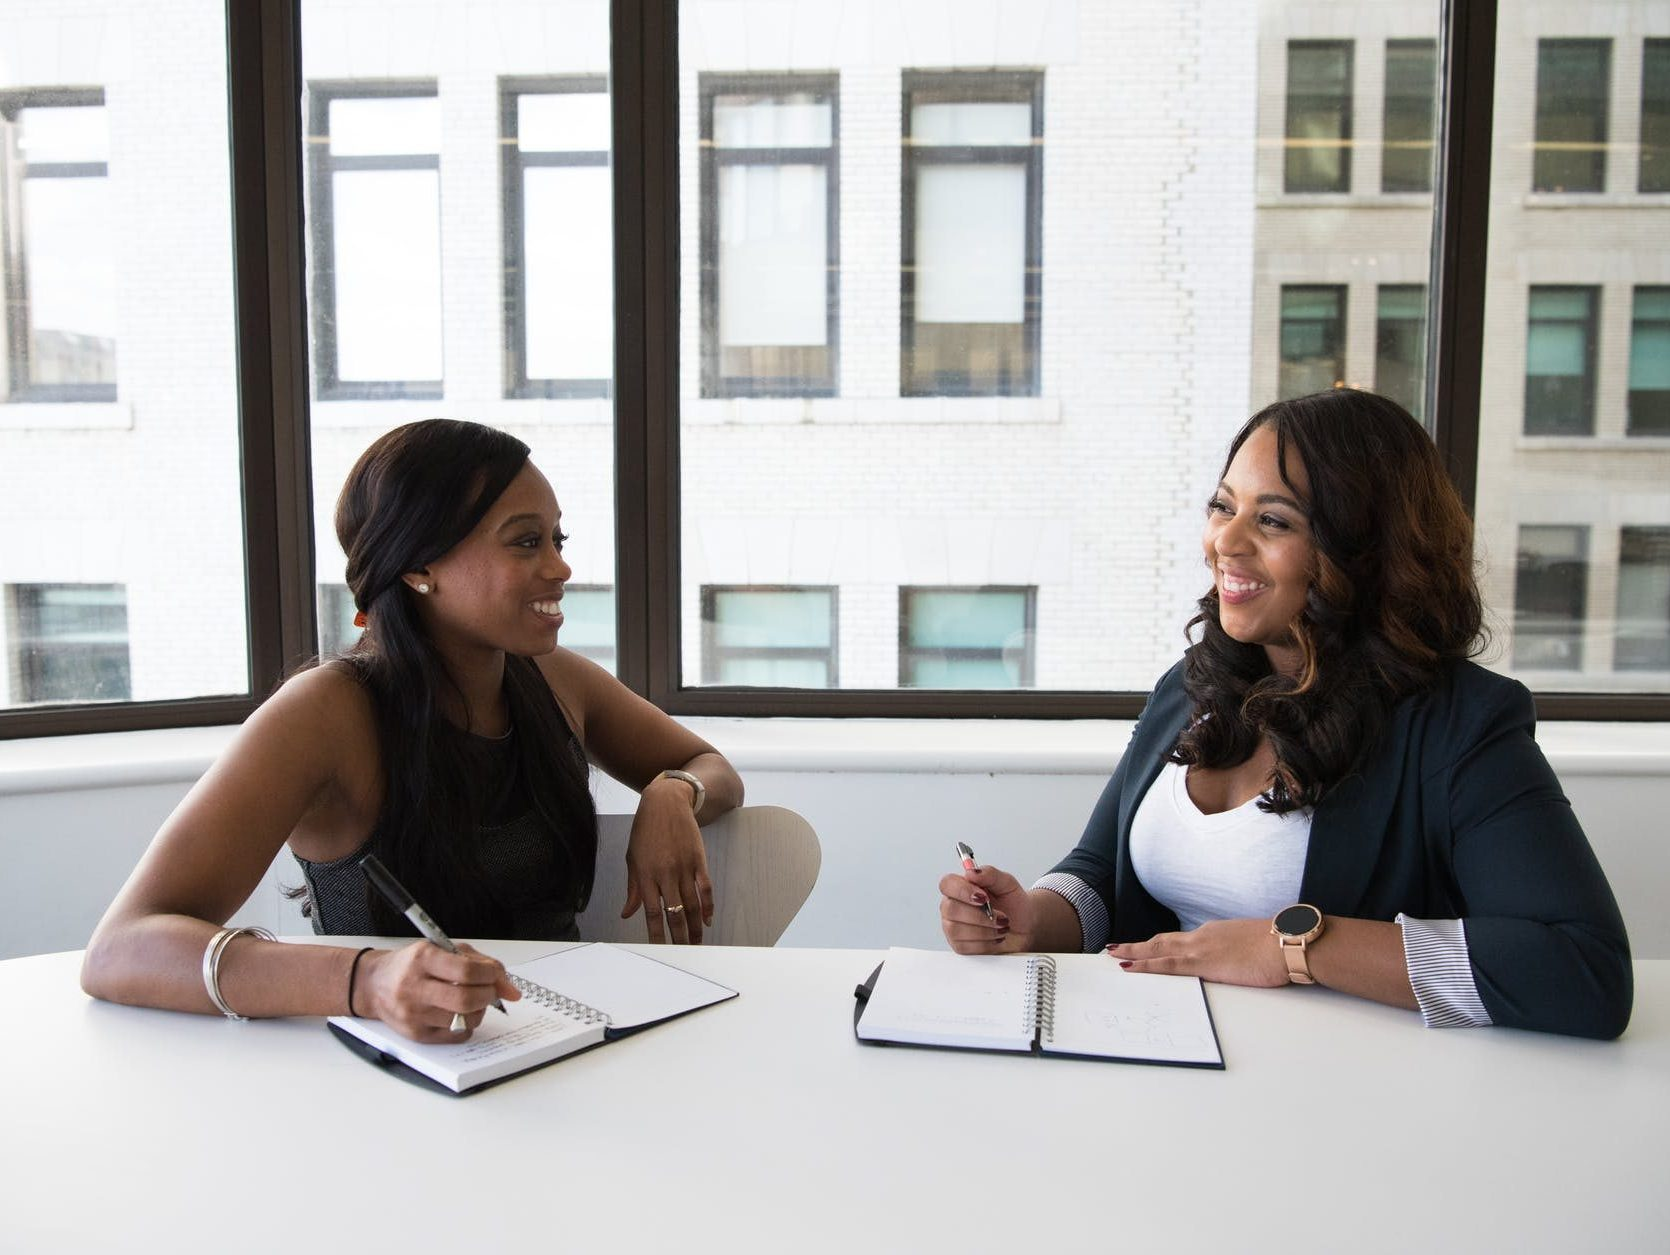 Two Black people with long hair in casual business attire sit at a table in front of a window, they are smiling at each other. On the table in front of each person are two notebooks . The people hold pens as if preparing to write.